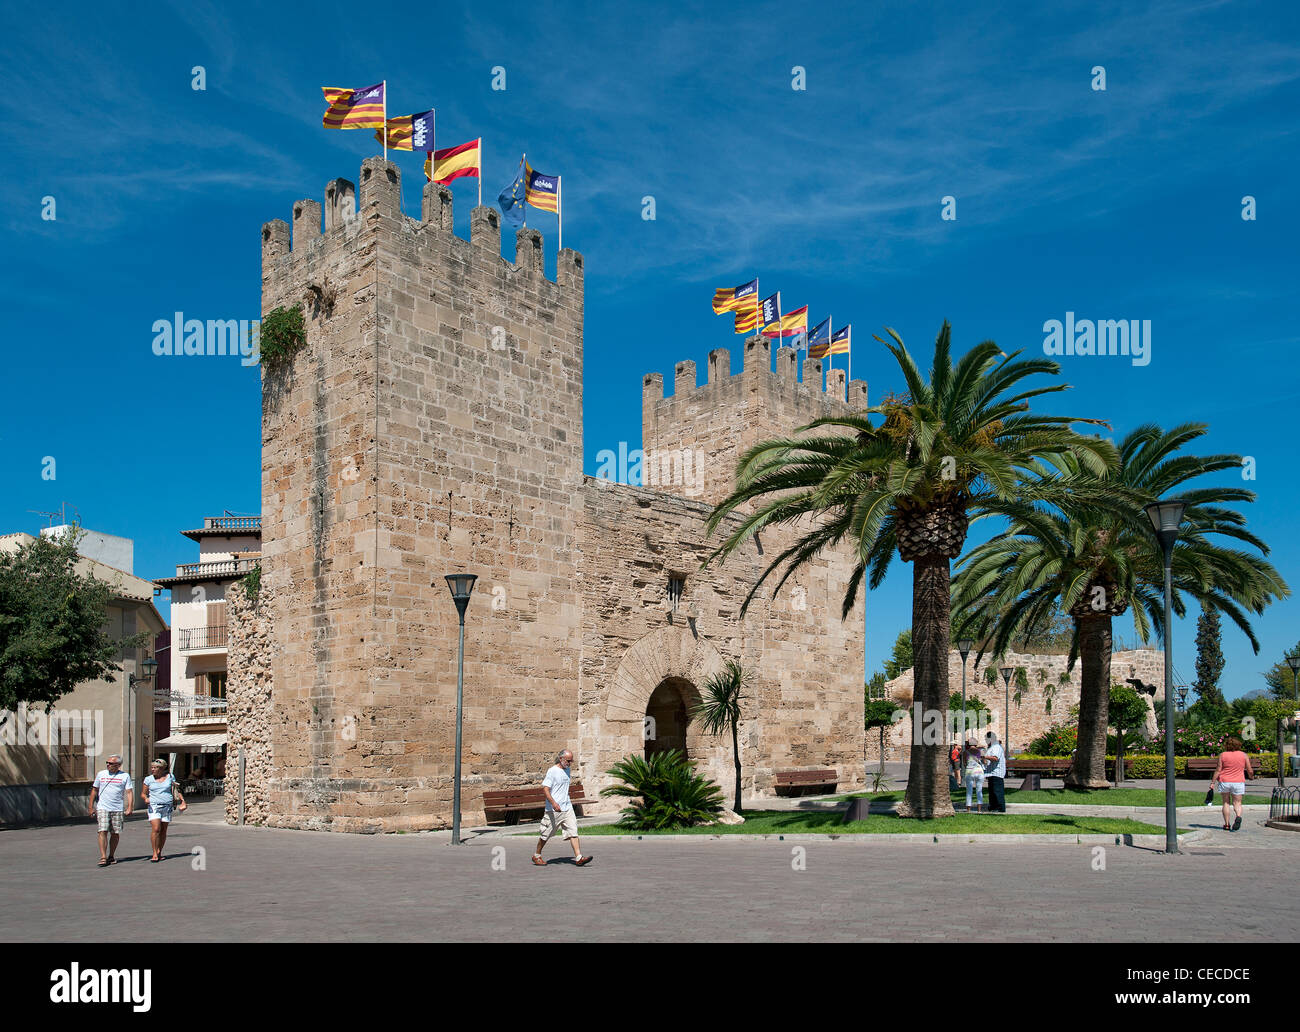 Gate of the city walls Alcudia Old Town Mallorca Balearics Spain - Stock Image